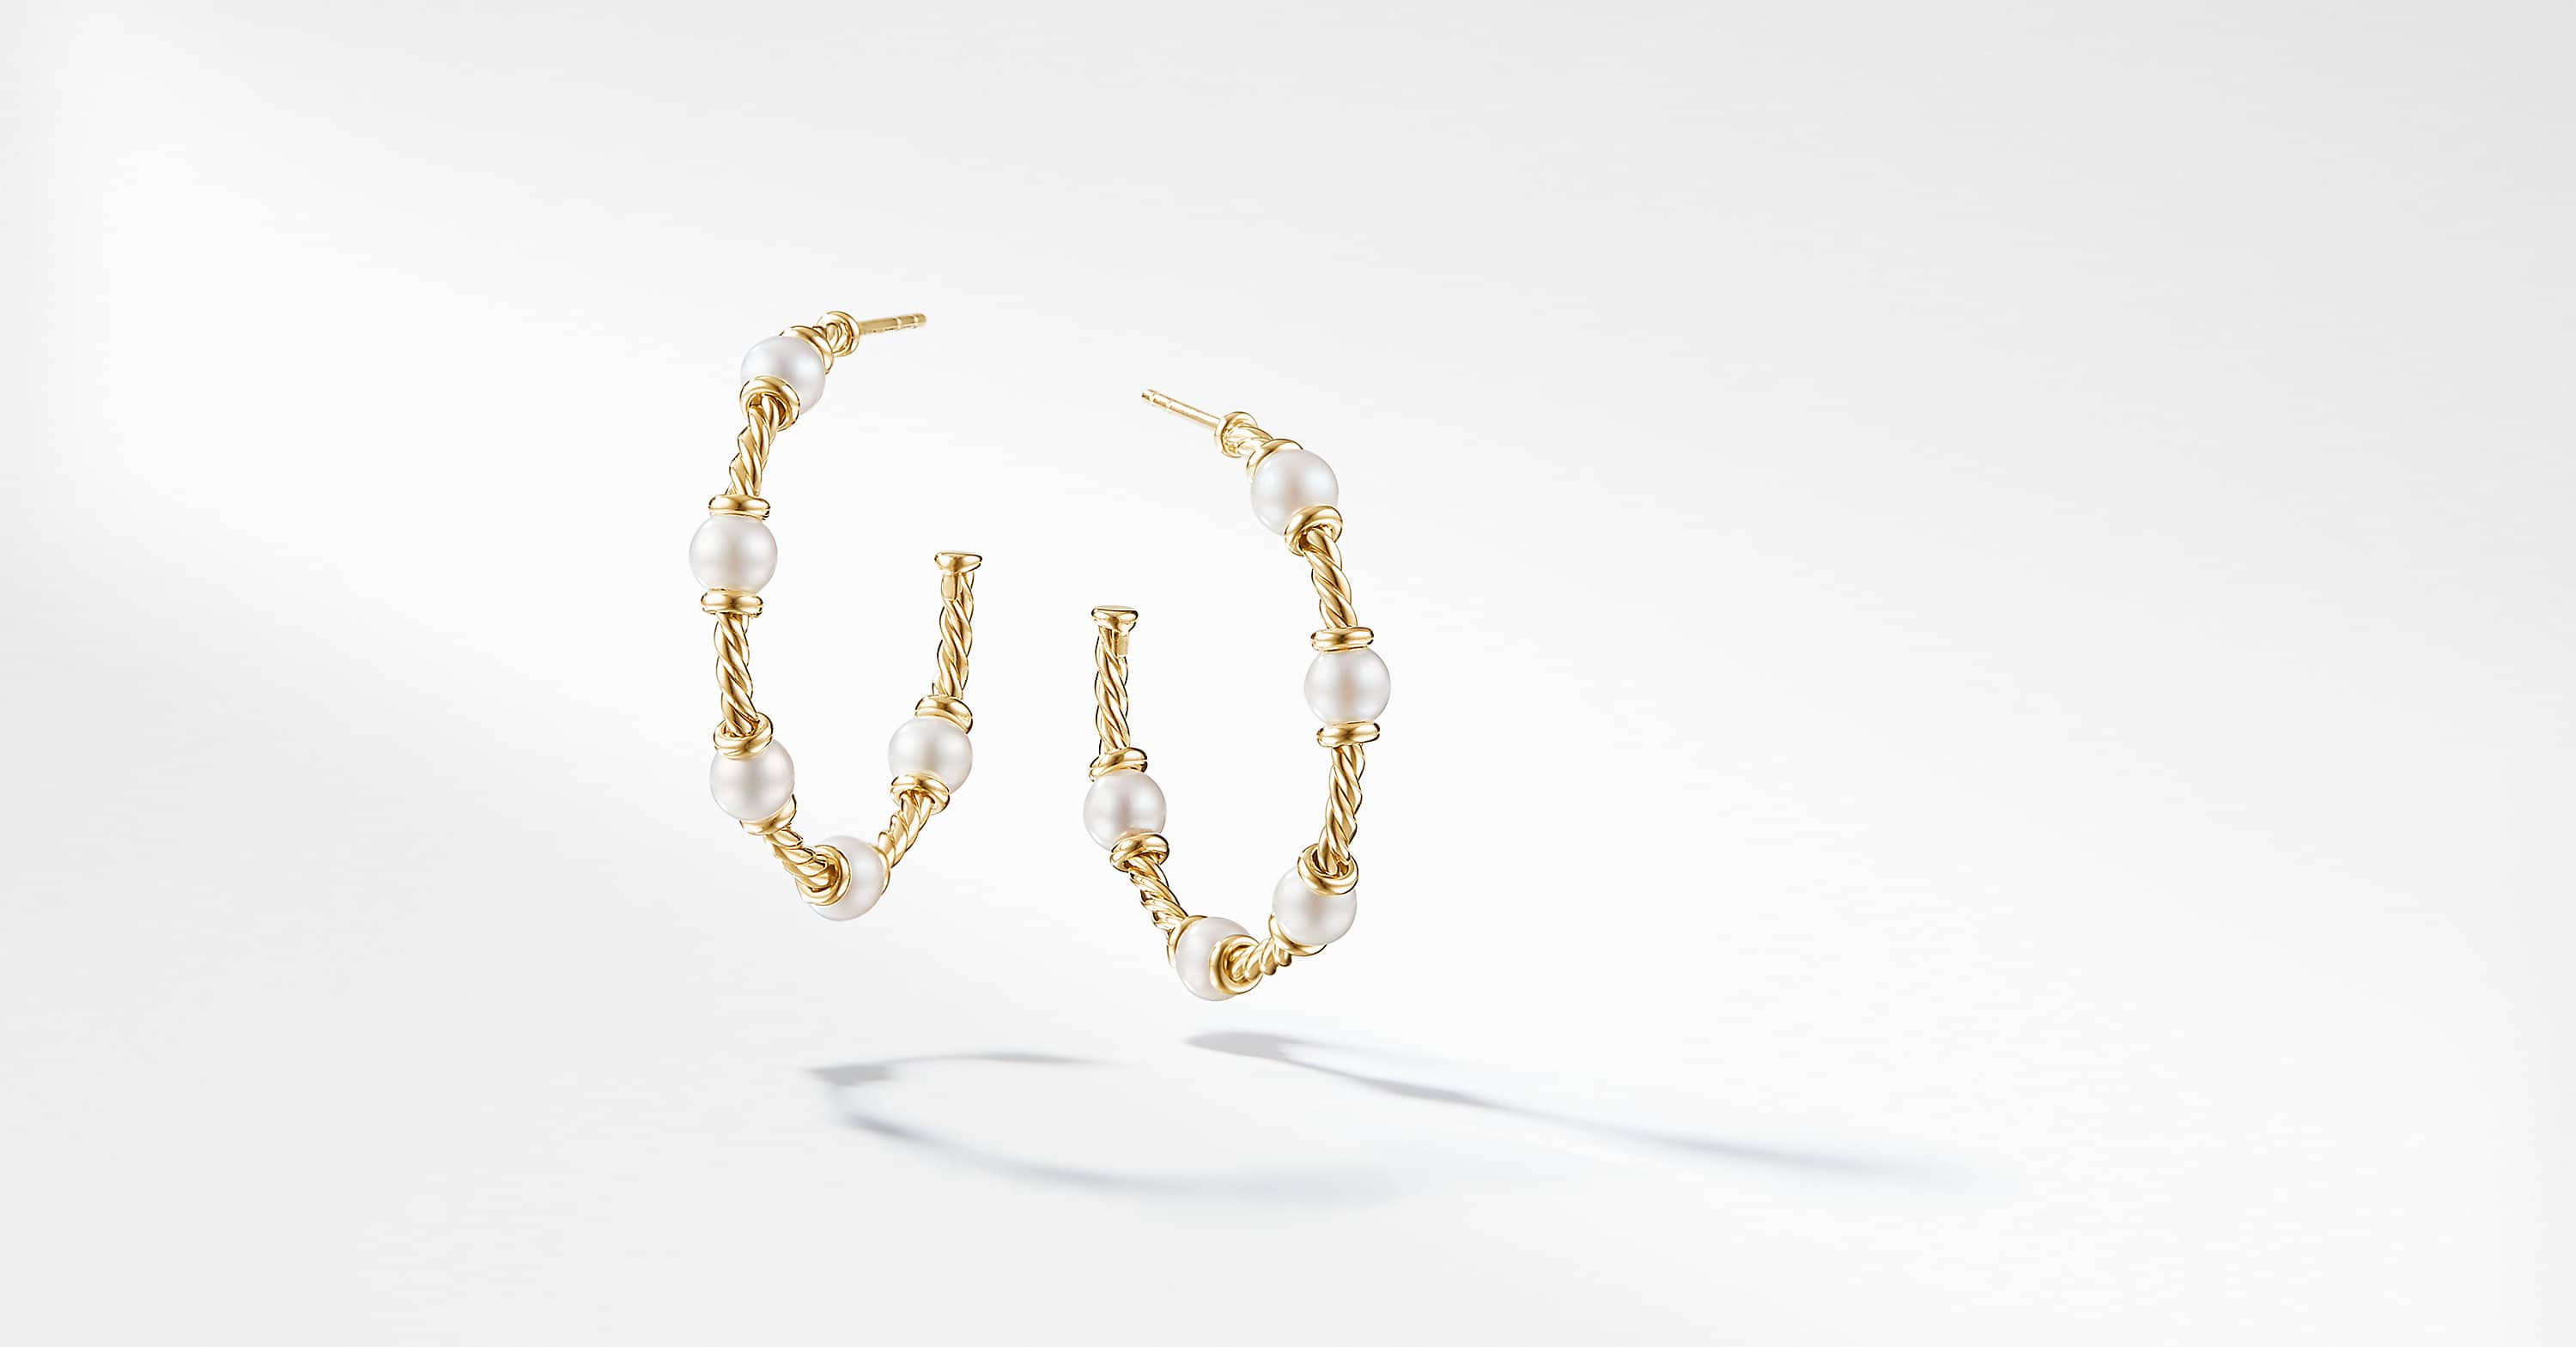 Petite Perle Large Hoop Earrings with Pearls in 18K Gold